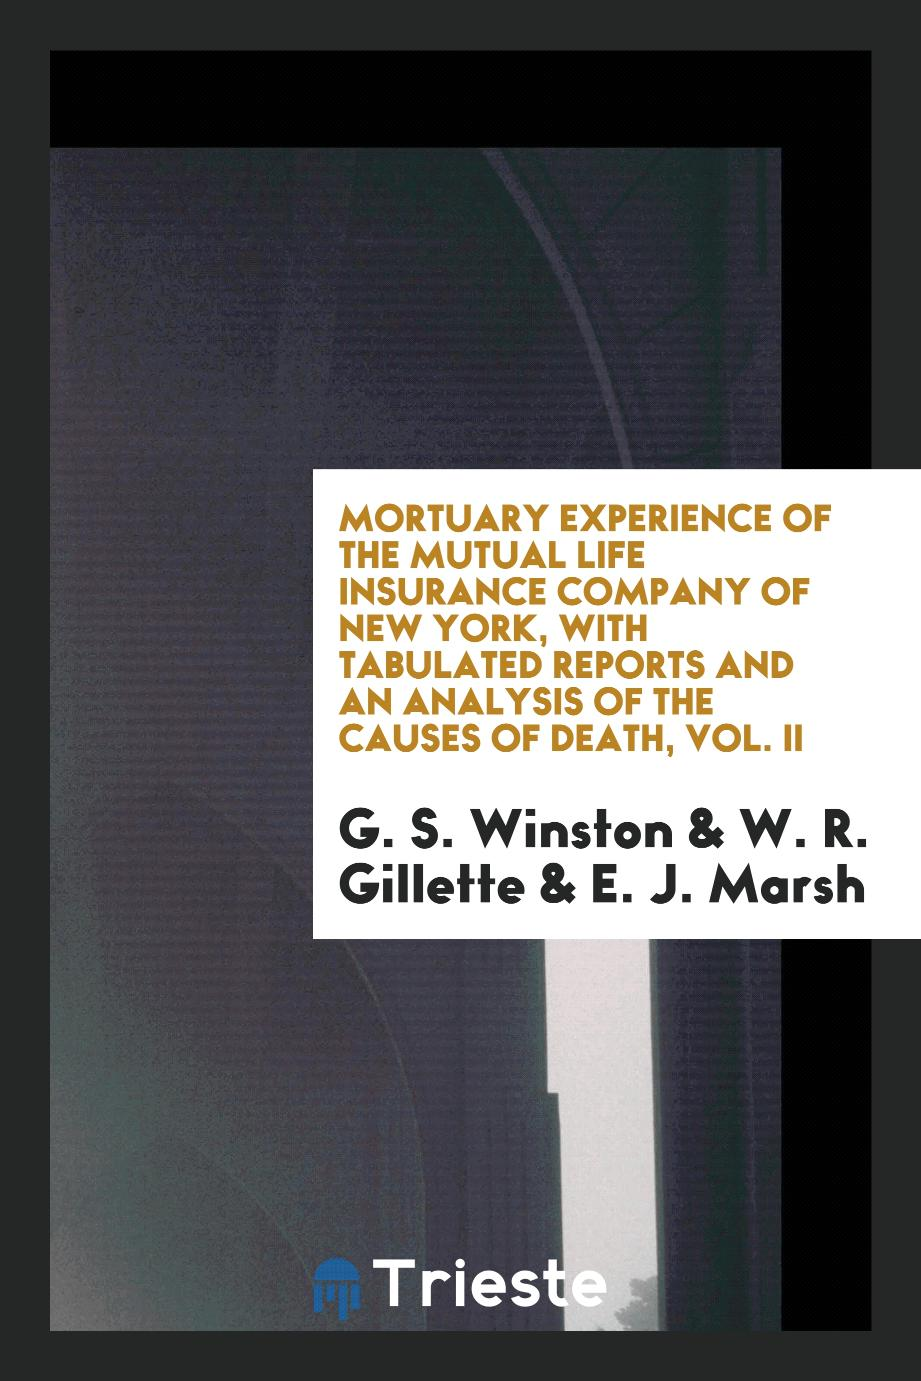 Mortuary Experience of the Mutual Life Insurance Company of New York, with Tabulated Reports and an Analysis of the Causes of Death, Vol. II